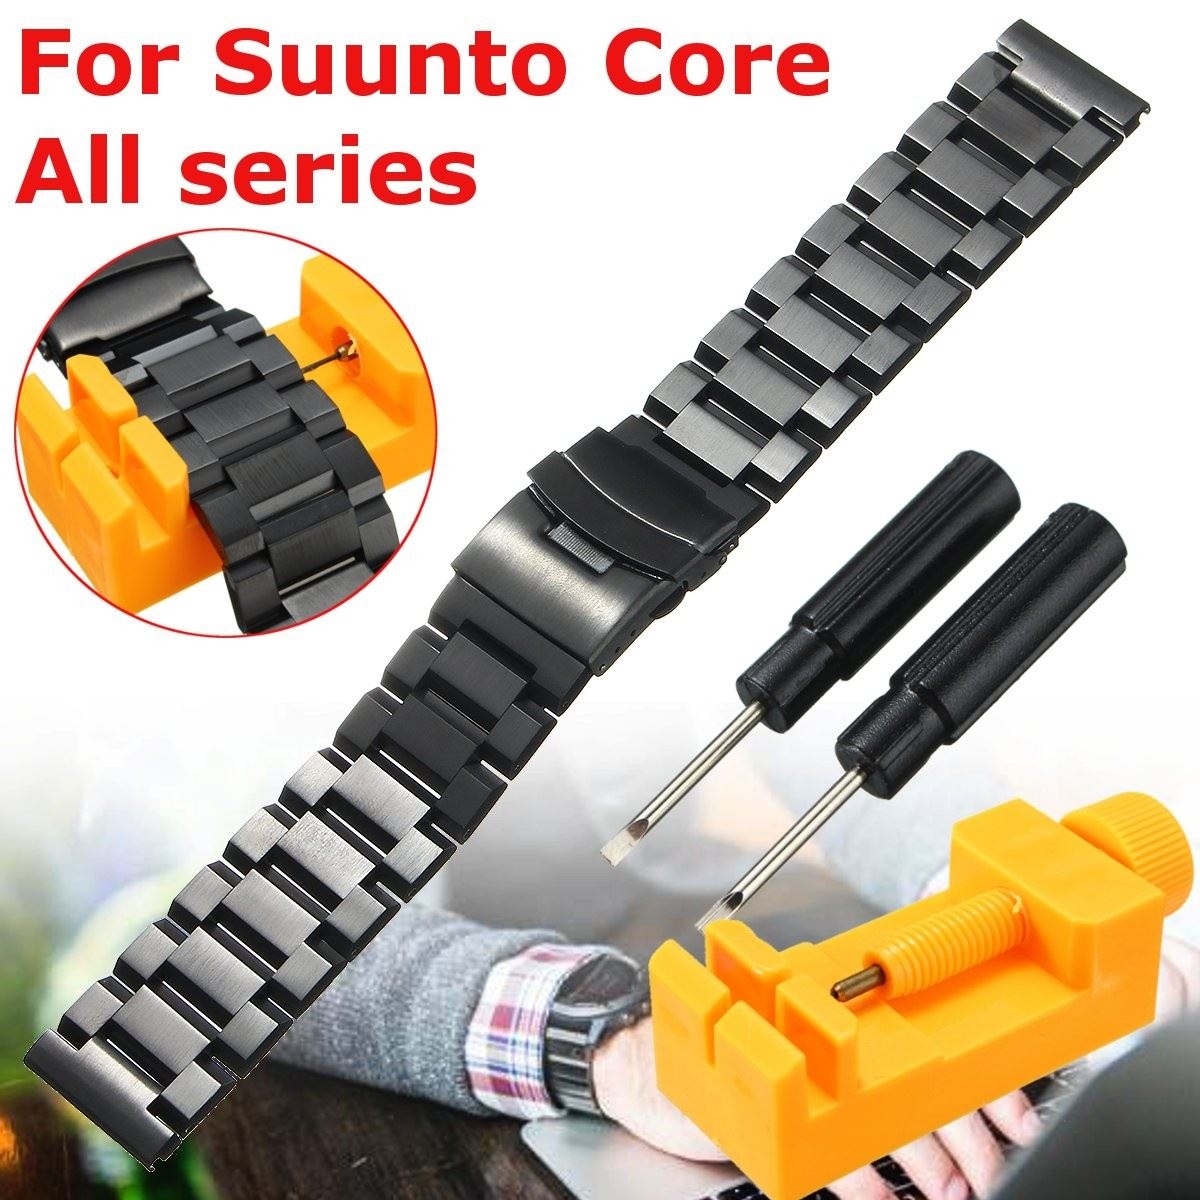 Stainless Steel Watchbands Strap 24mm Double Flip Lock Buckle For Suunto Core Silver Black Metal Watch Bracelets+Free Tools suunto core brushed steel